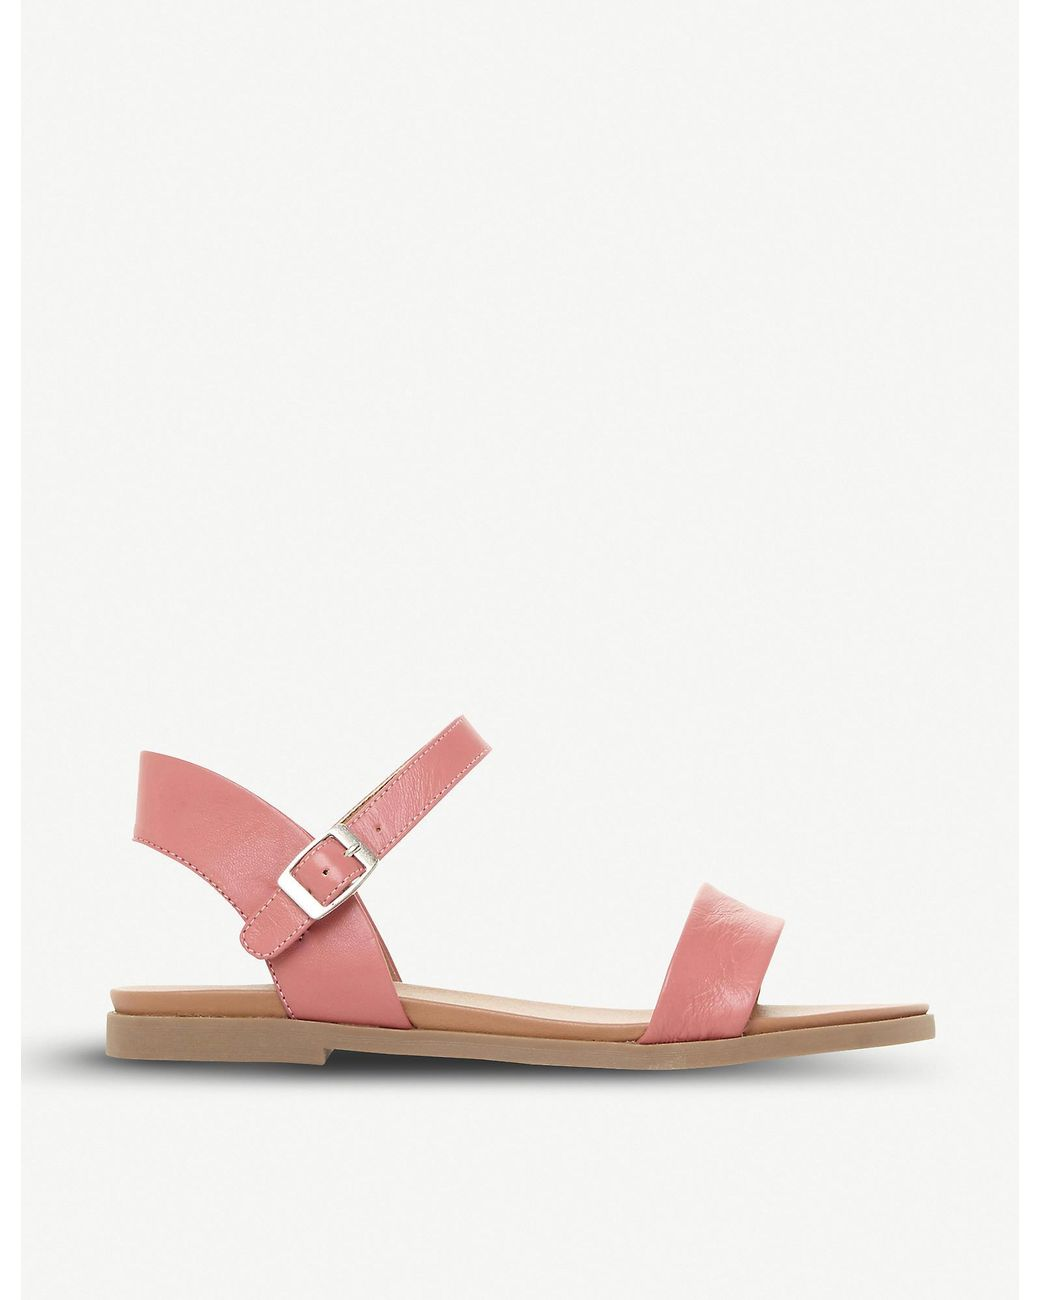 Steve Madden DINA Sandals Rose Gold Metallic Leather New With Box